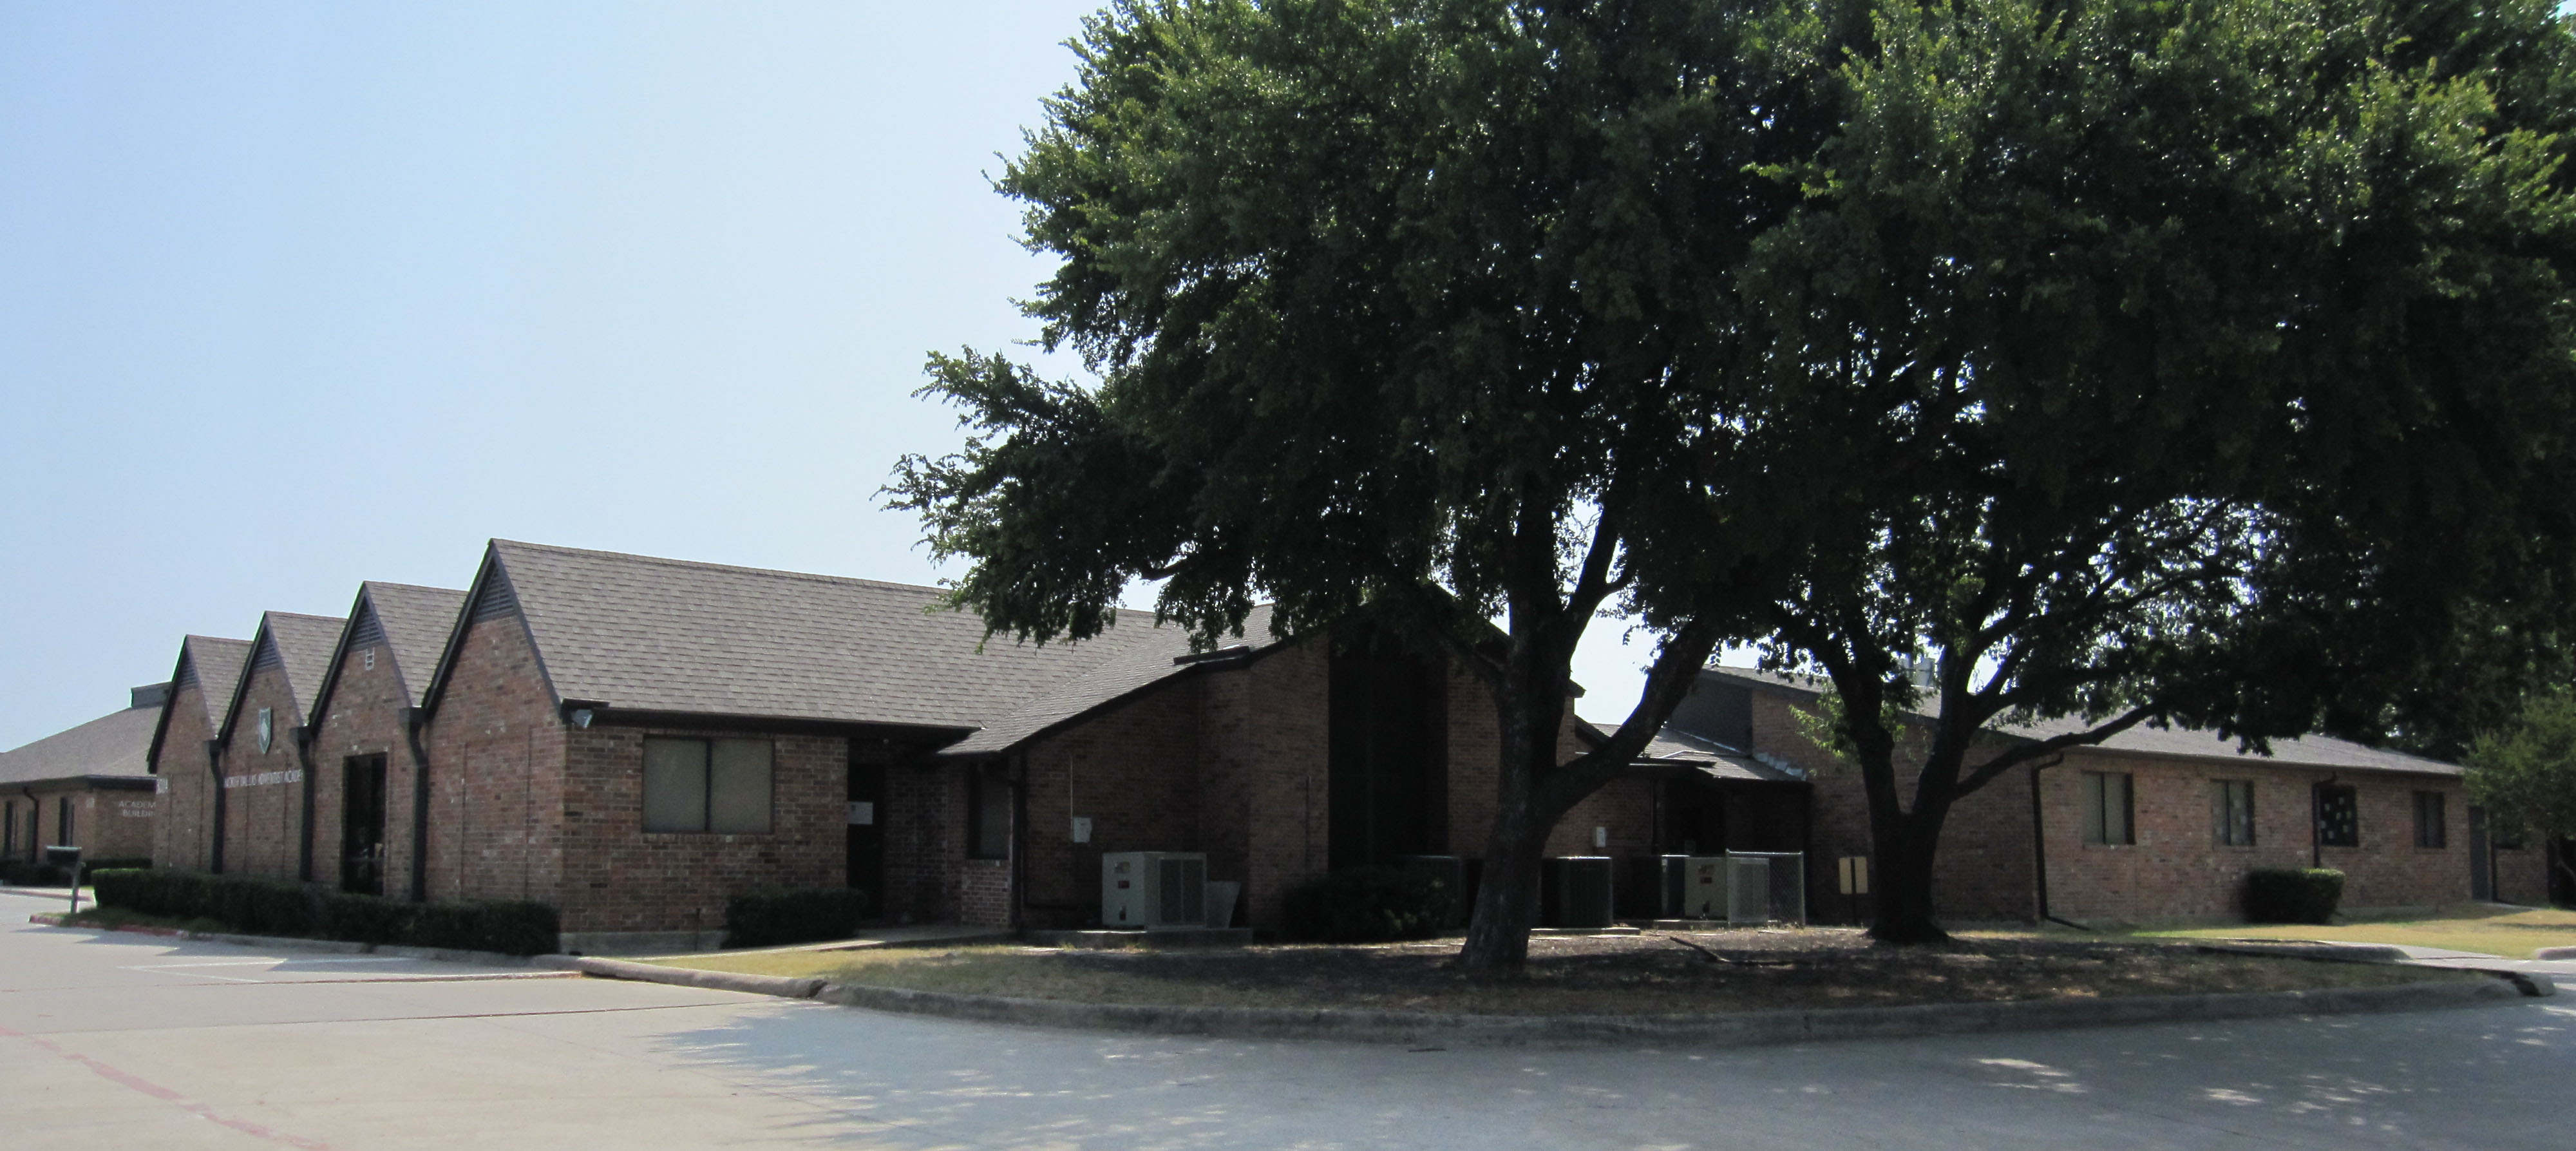 North Dallas Community Bible Fellowship Church - Richardson, Texas